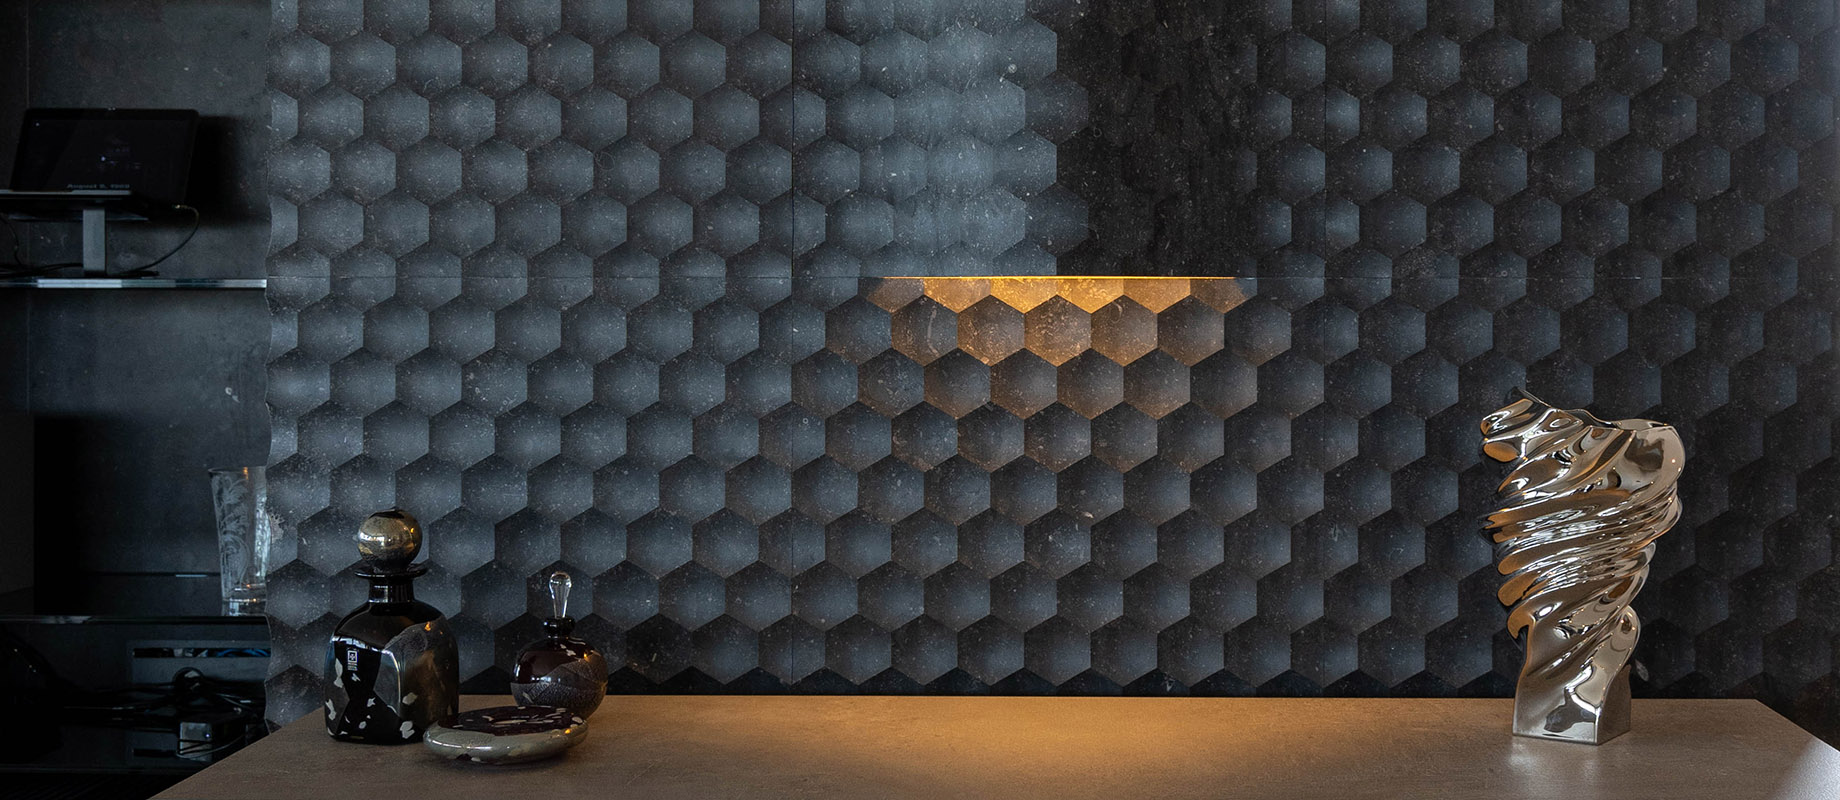 Lithos_Design_Private_Residence_Riviera_of_Athens_mur en marbre Favo